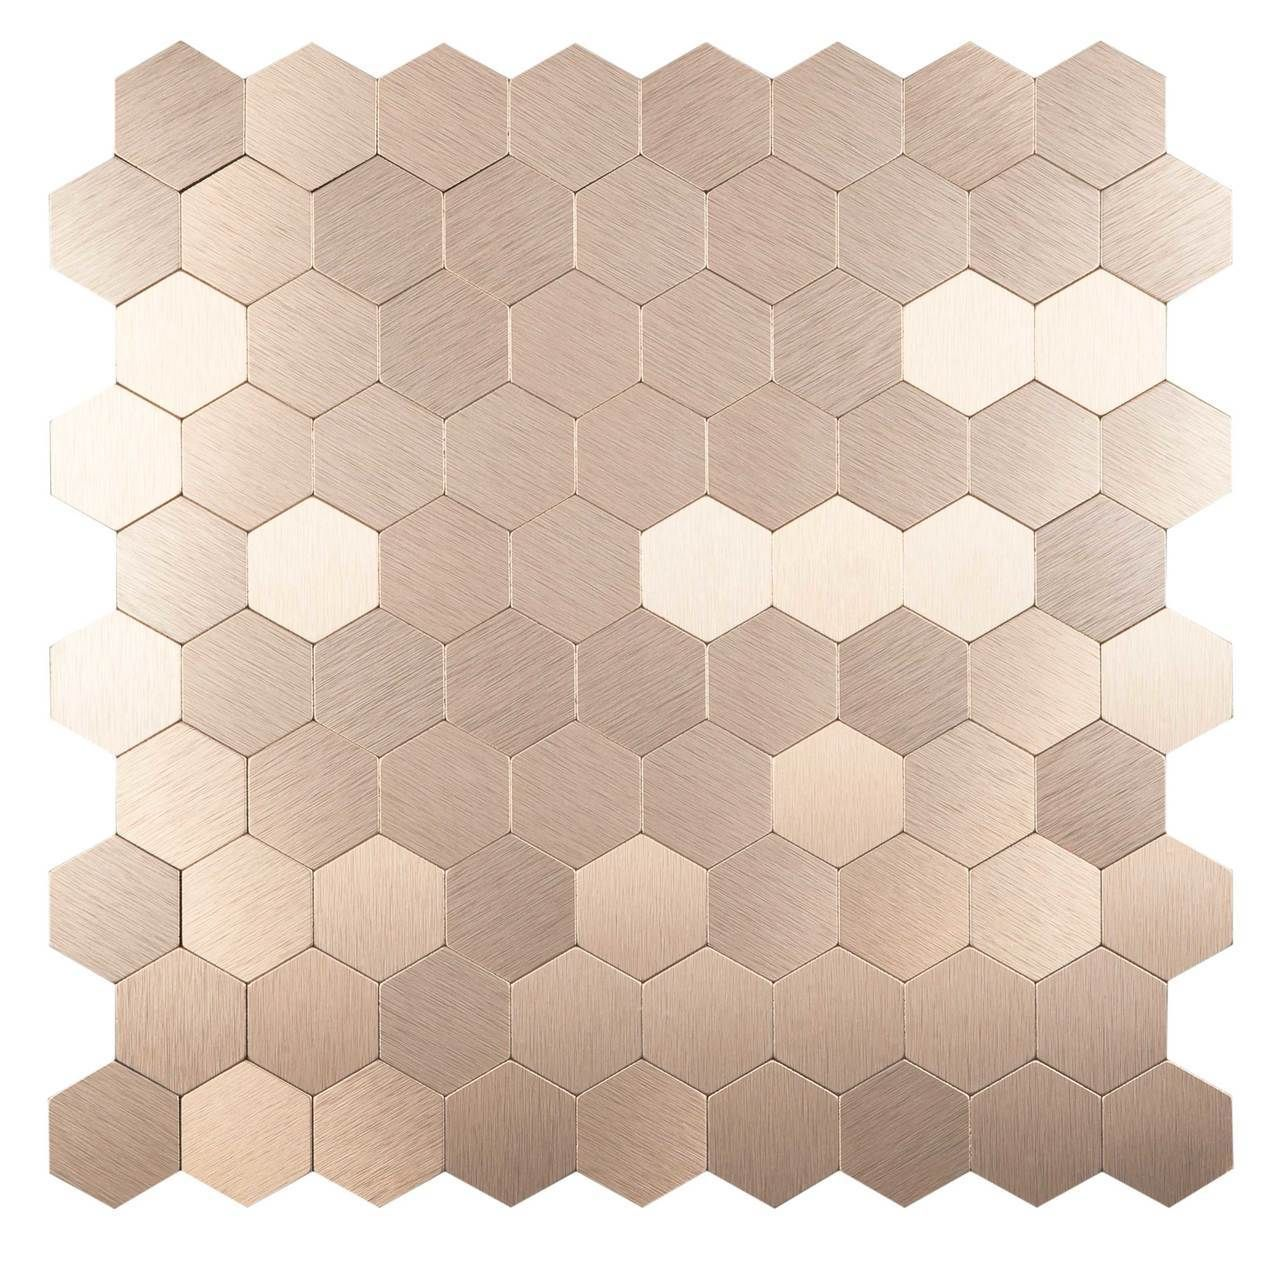 Peel Stick Stainless Steel Tile Hexagon Bronze For Kitchen